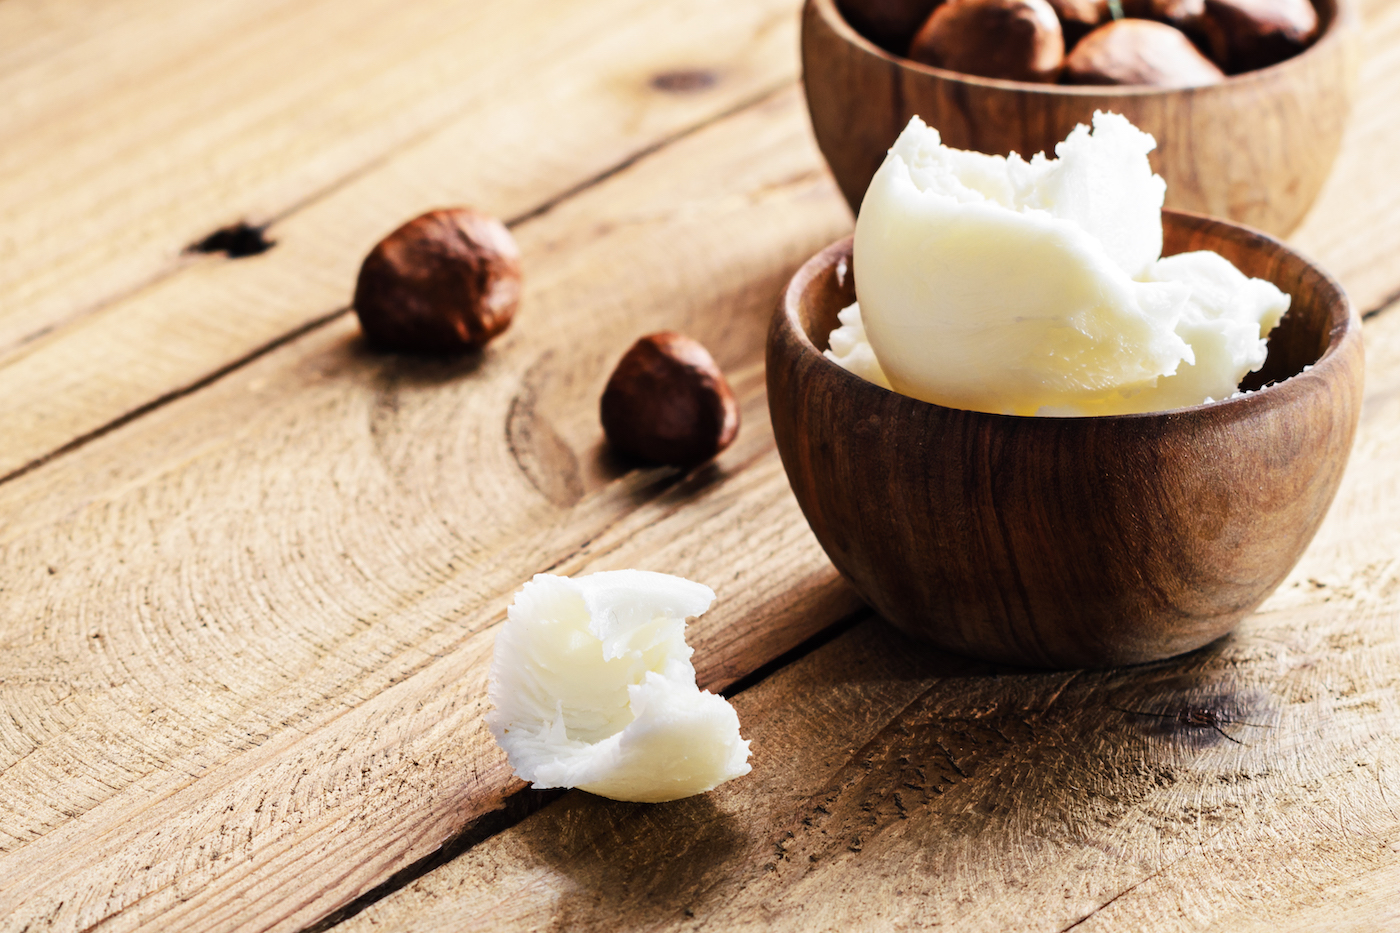 Shea butter has more beauty uses than you might think | Well+Good